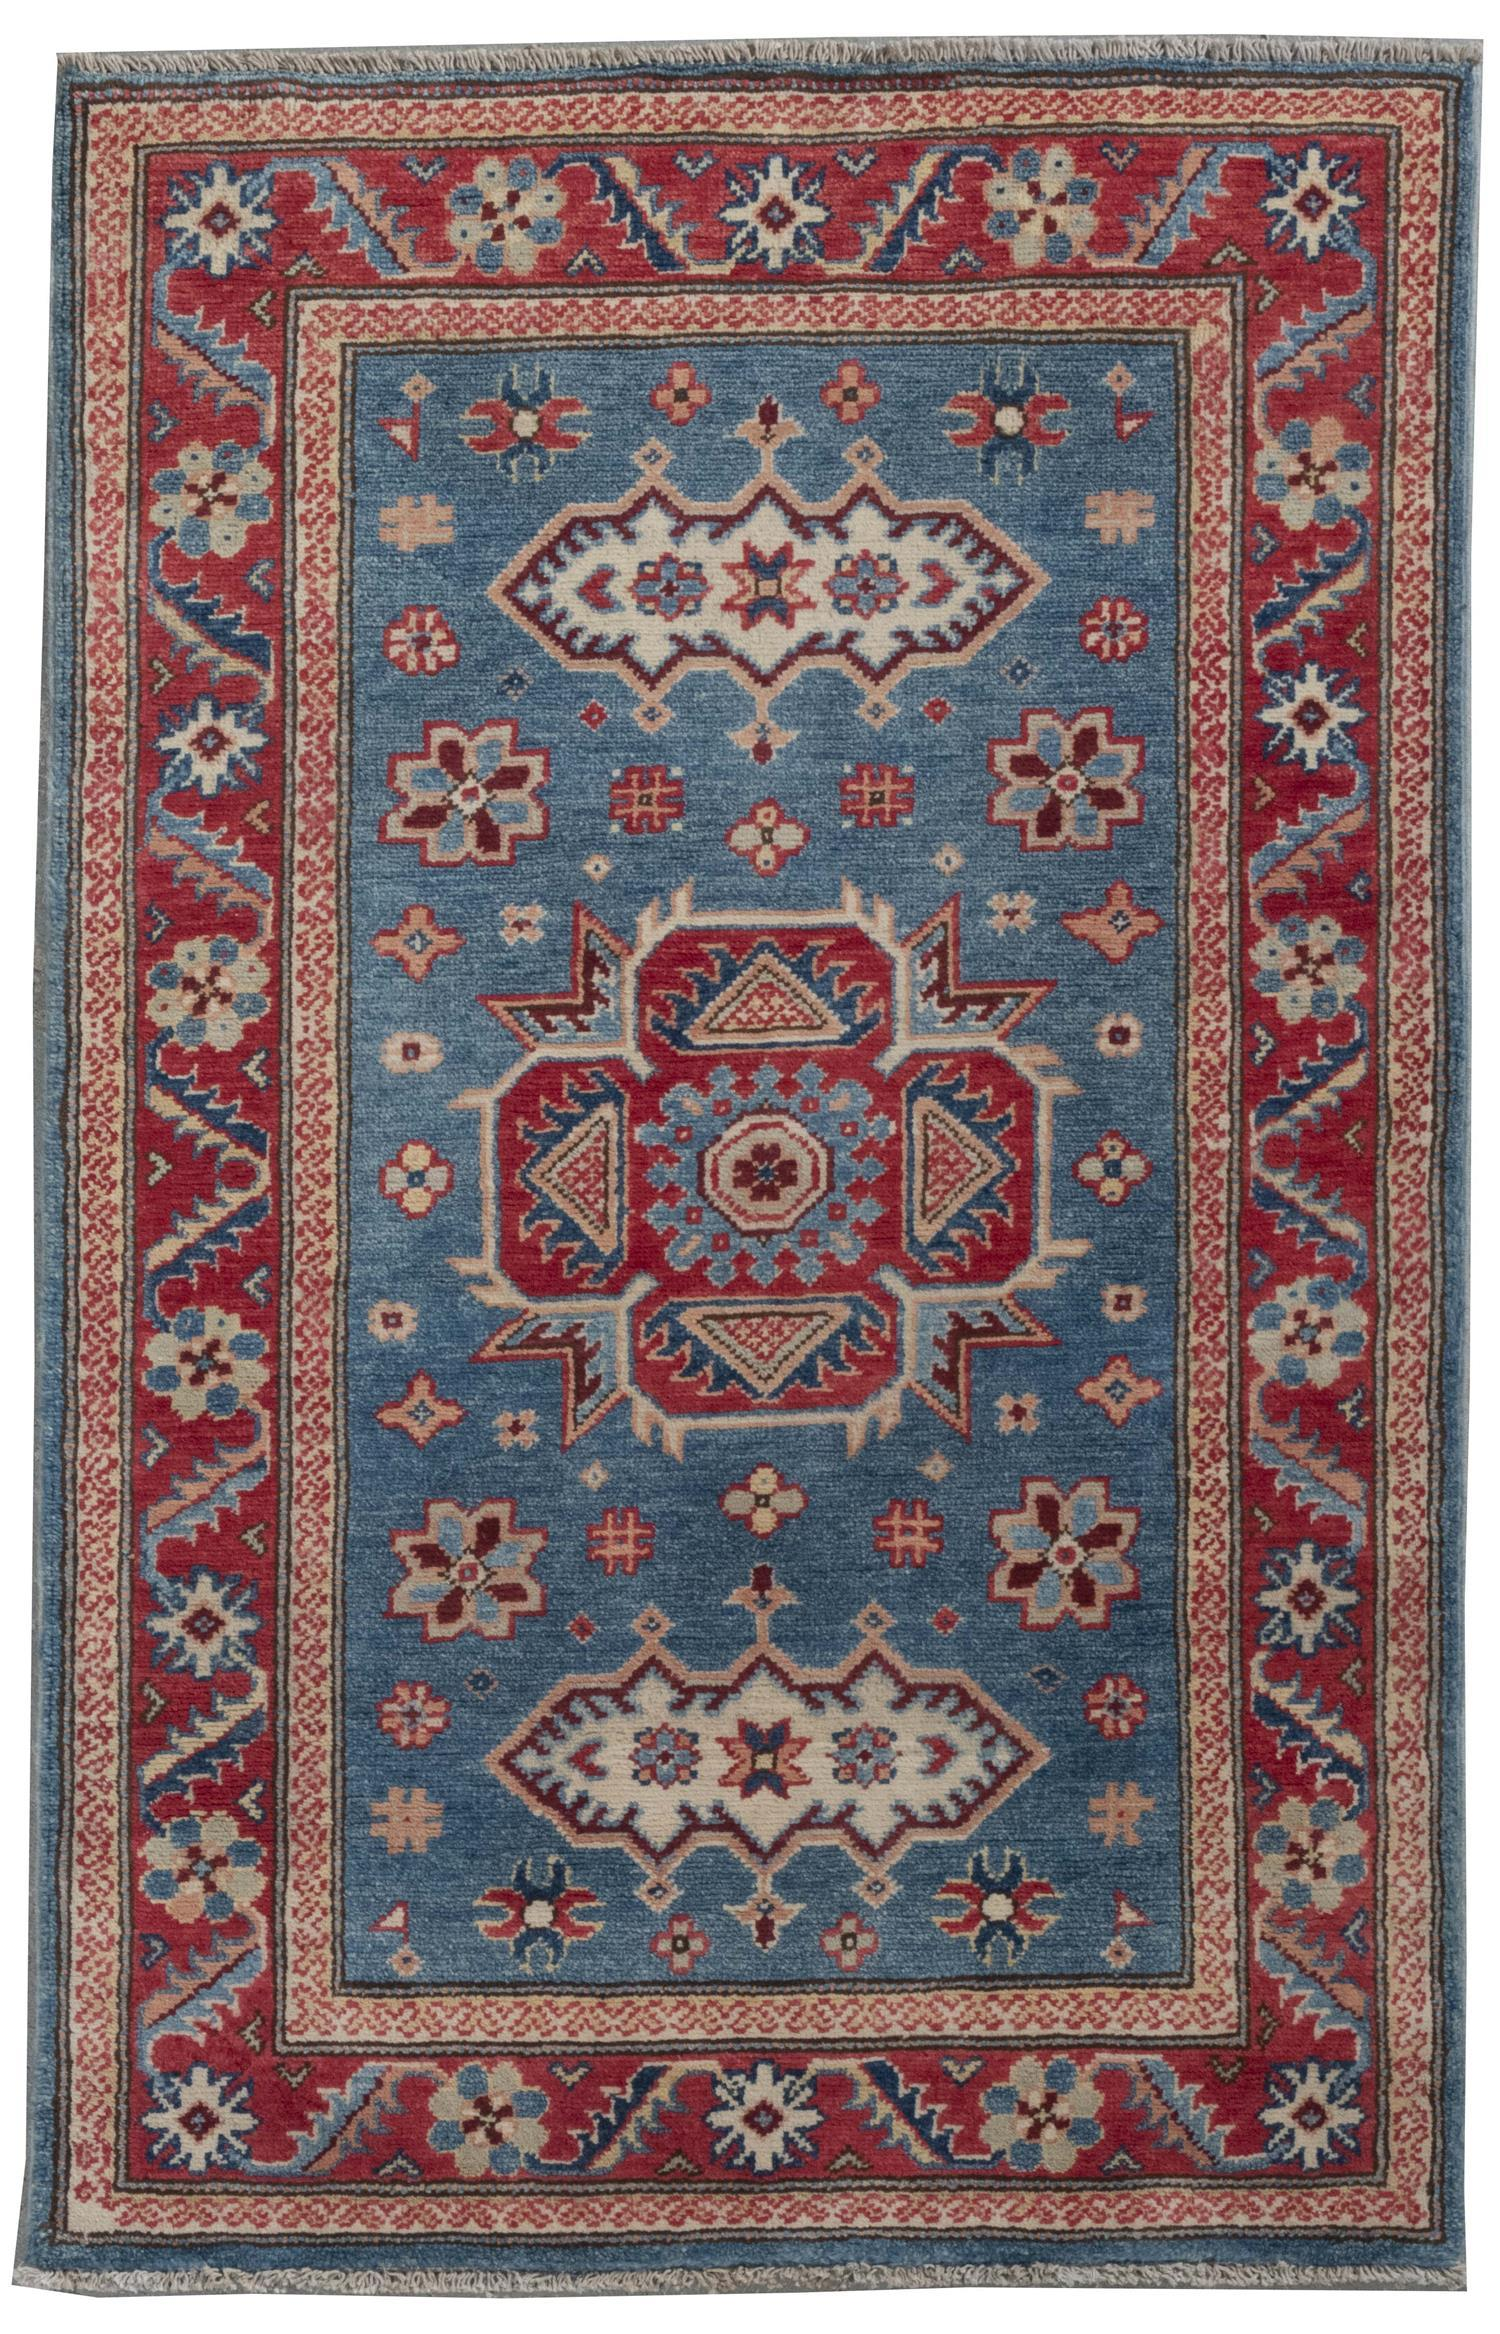 """ORIENTAL RUG: KAZAK DESIGN 3'1"""" x 4'9"""" Pale green and bright red geometric medallions contain, and are surrounded by, blue, gold and."""